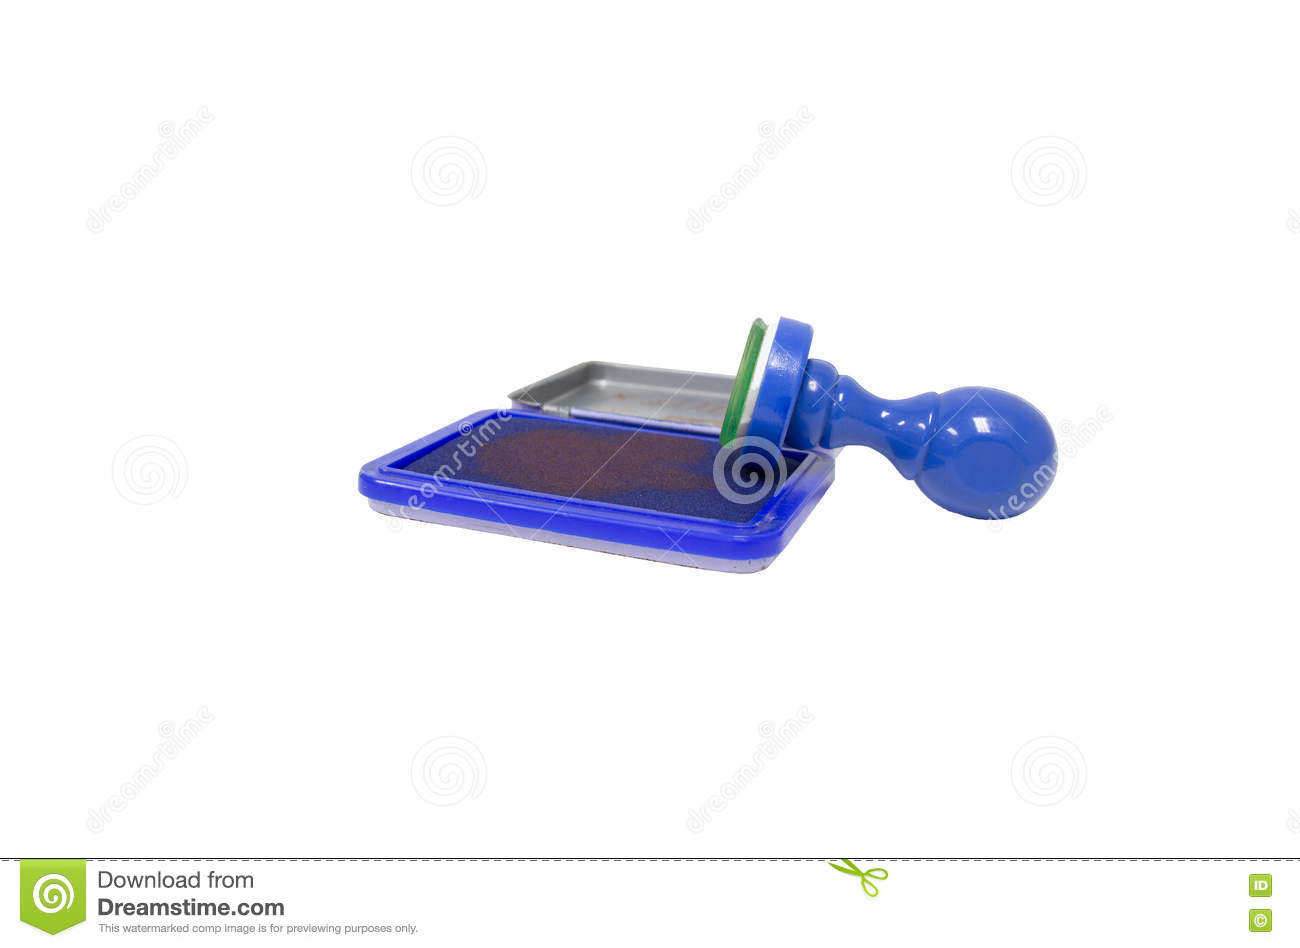 Blue rubber stamps, office equipment, equipment for businesses.